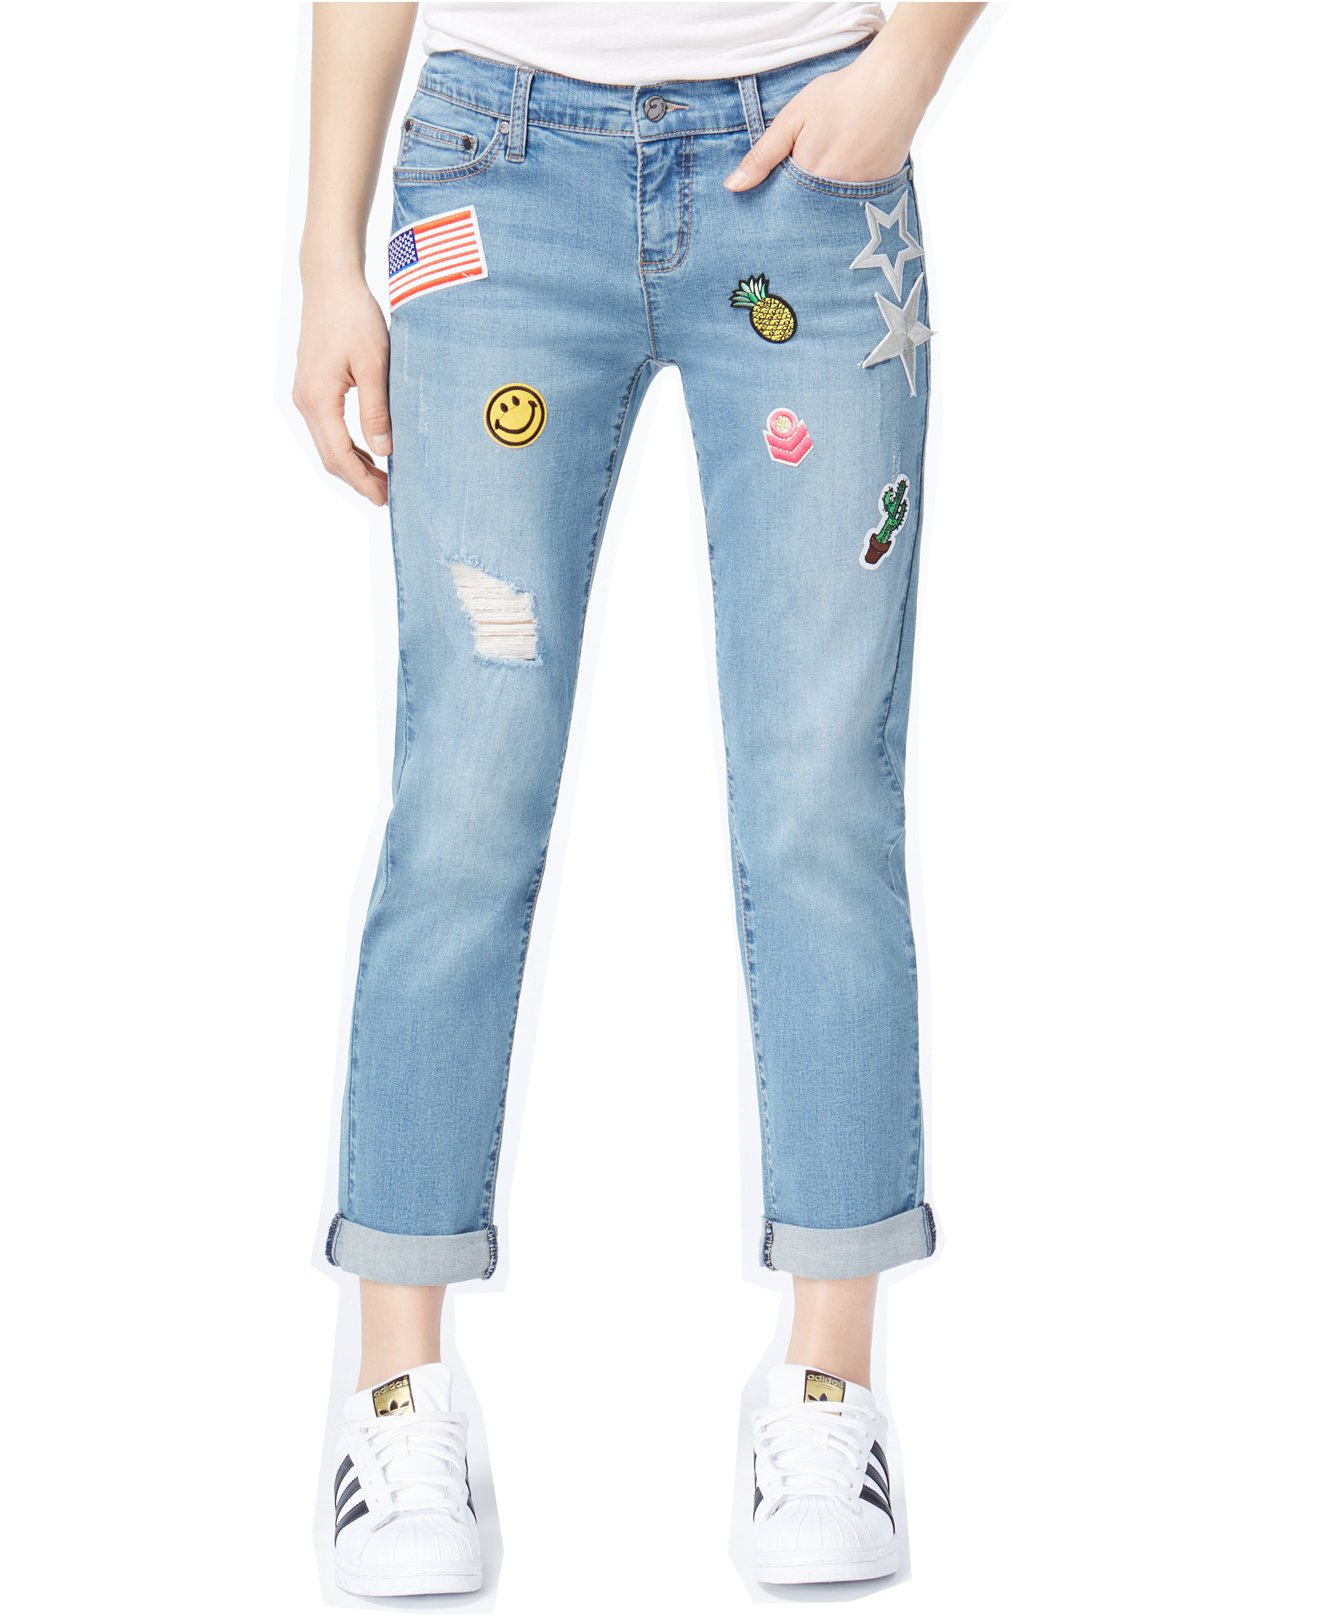 Earl Jean Women's Destructed Patched Boyfriend Jeans (Blue, 10) by Earl Jean